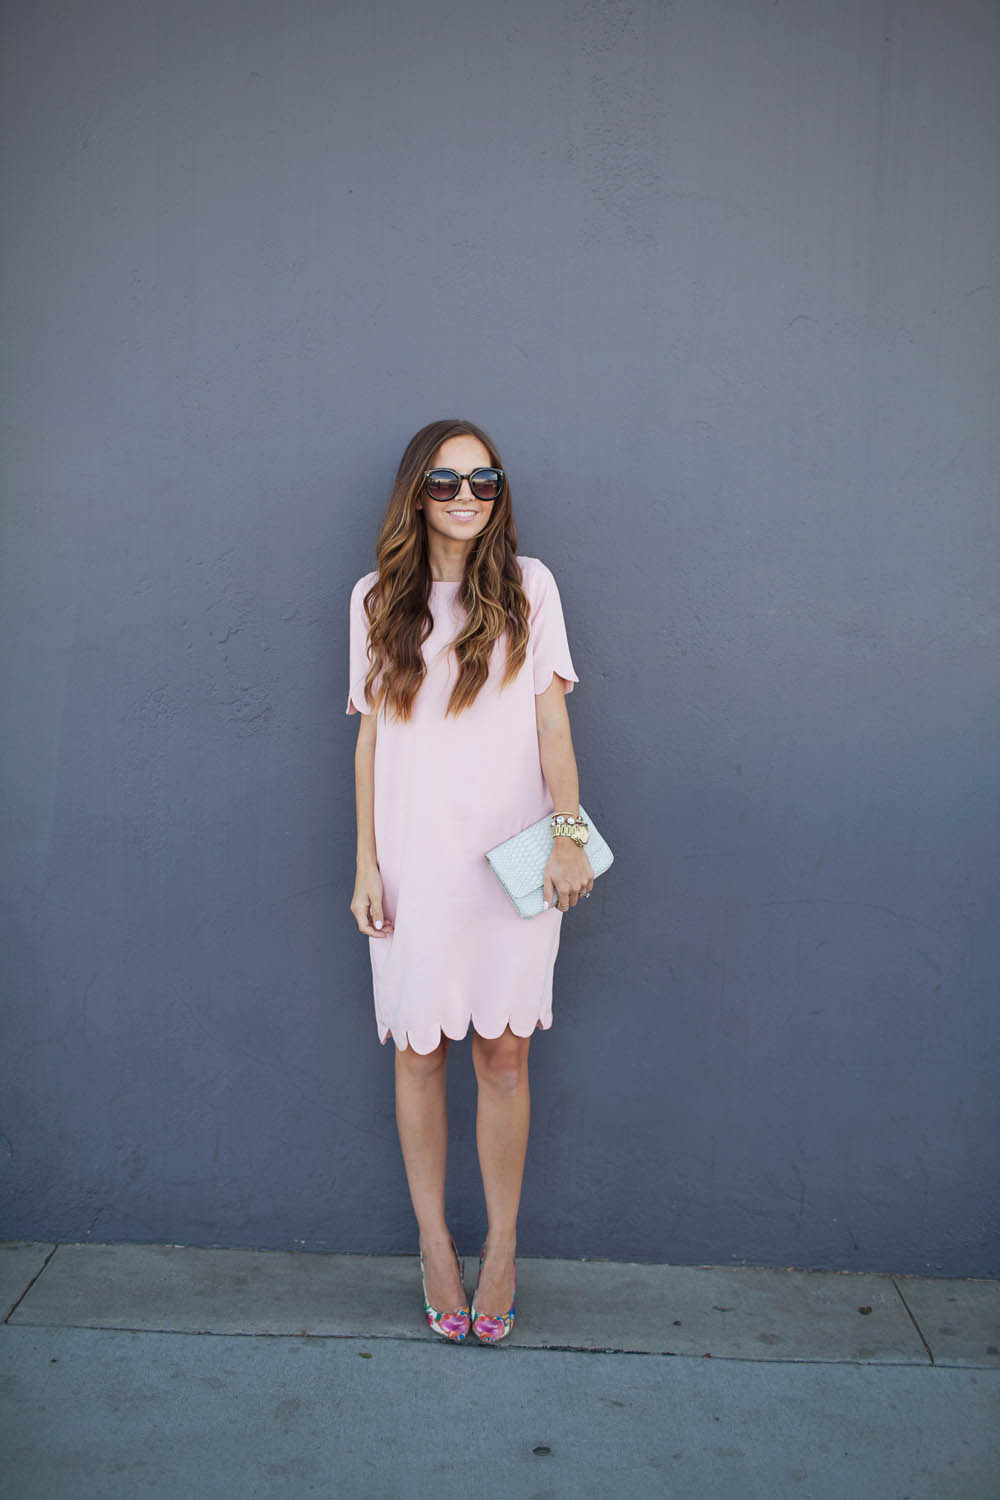 Merrick's Art Powder Pink Dress